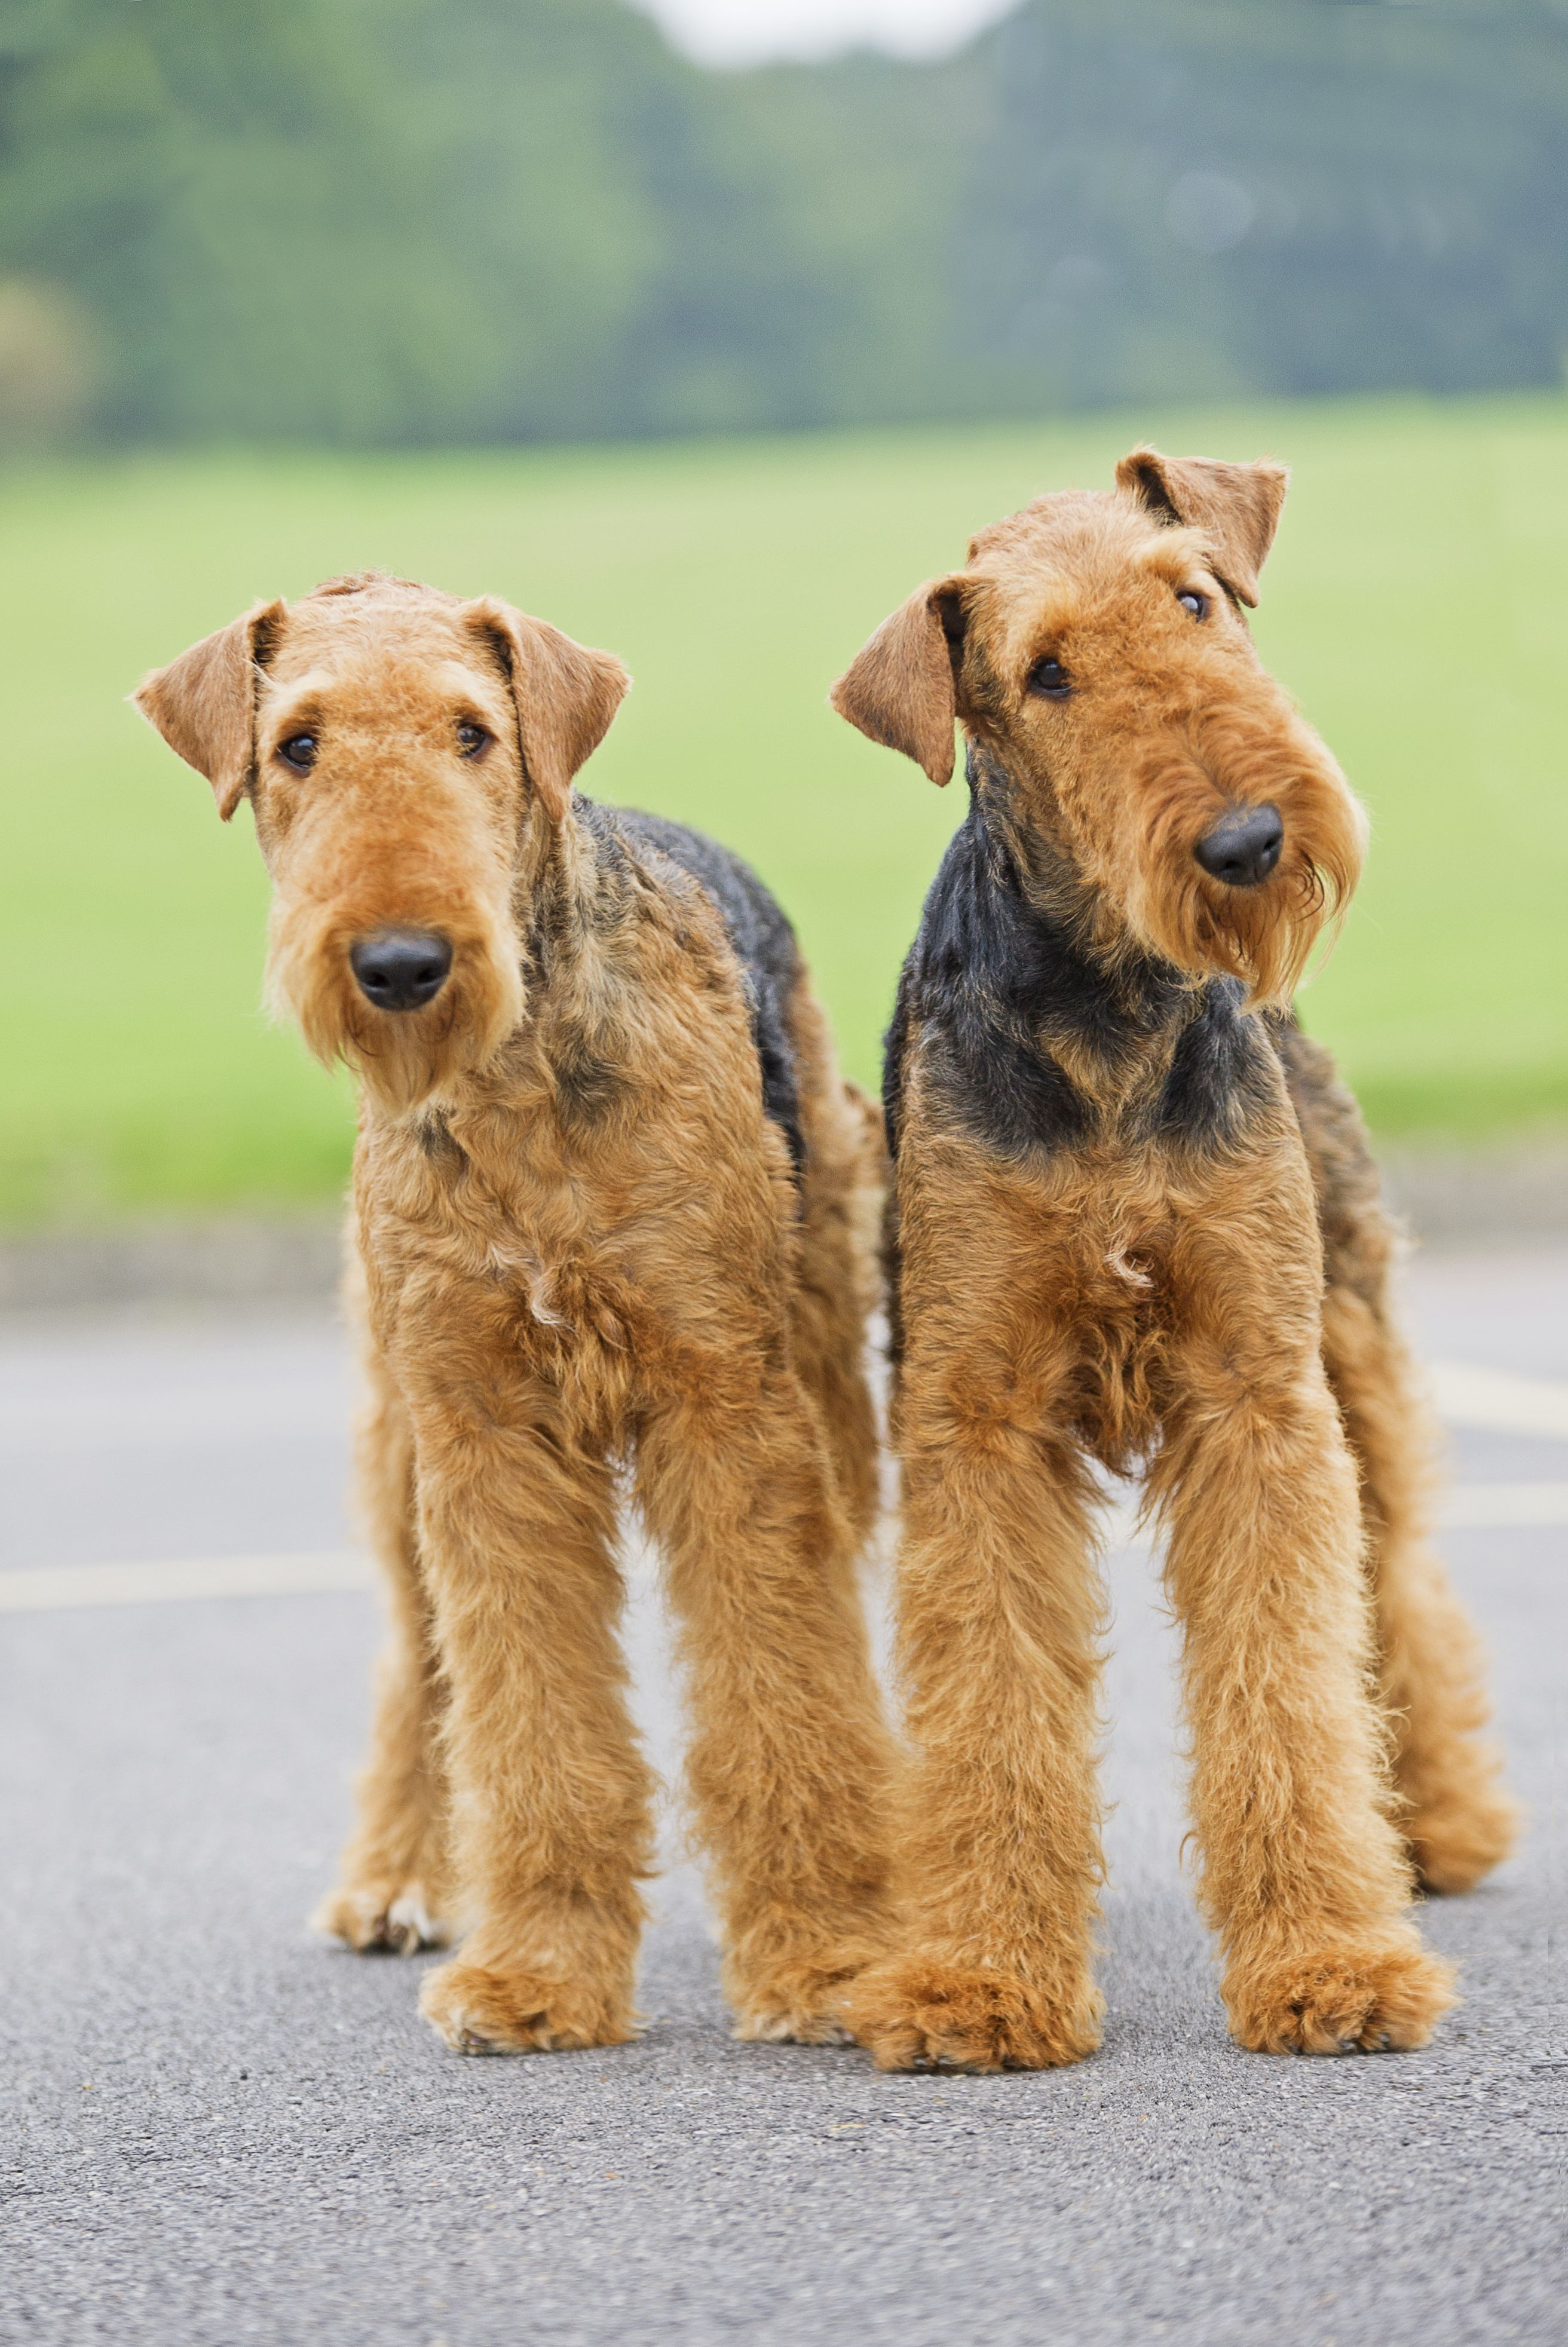 Pin By Sue Payton On Touessrok Airedales Airedale Terrier Puppies Airedale Terrier Airedale Dogs